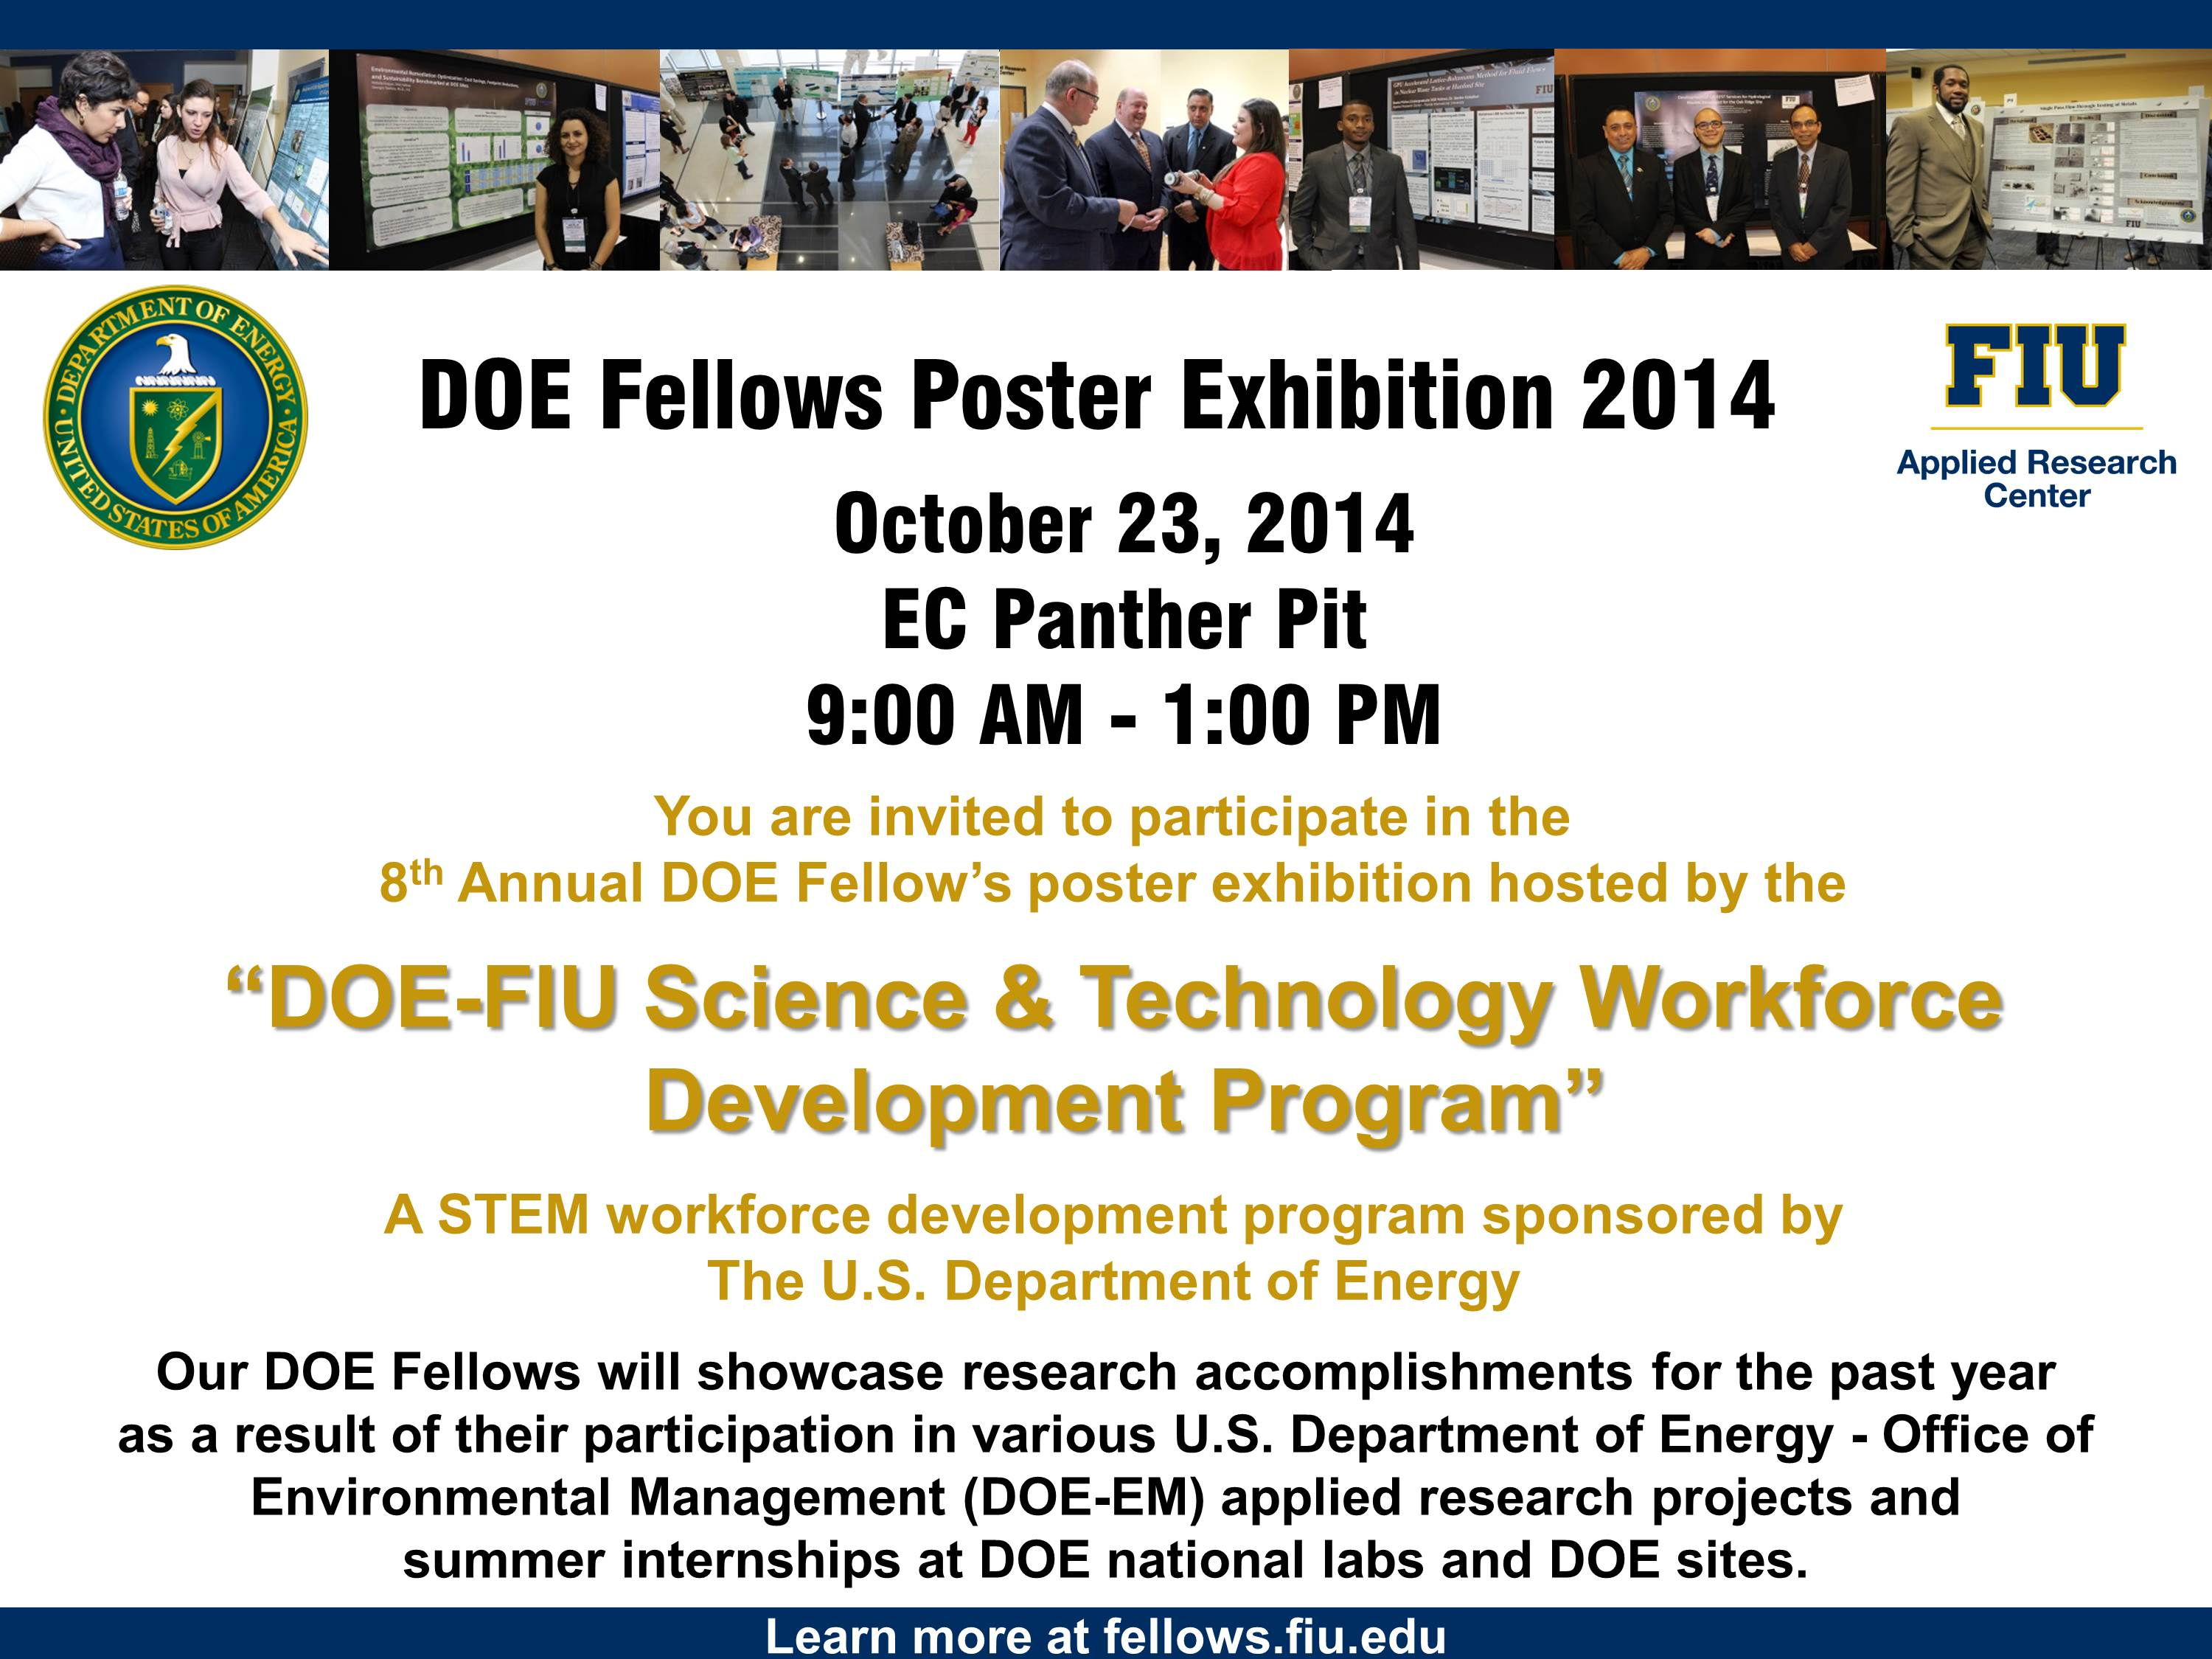 DOE Fellows Poster Exhibition 2014